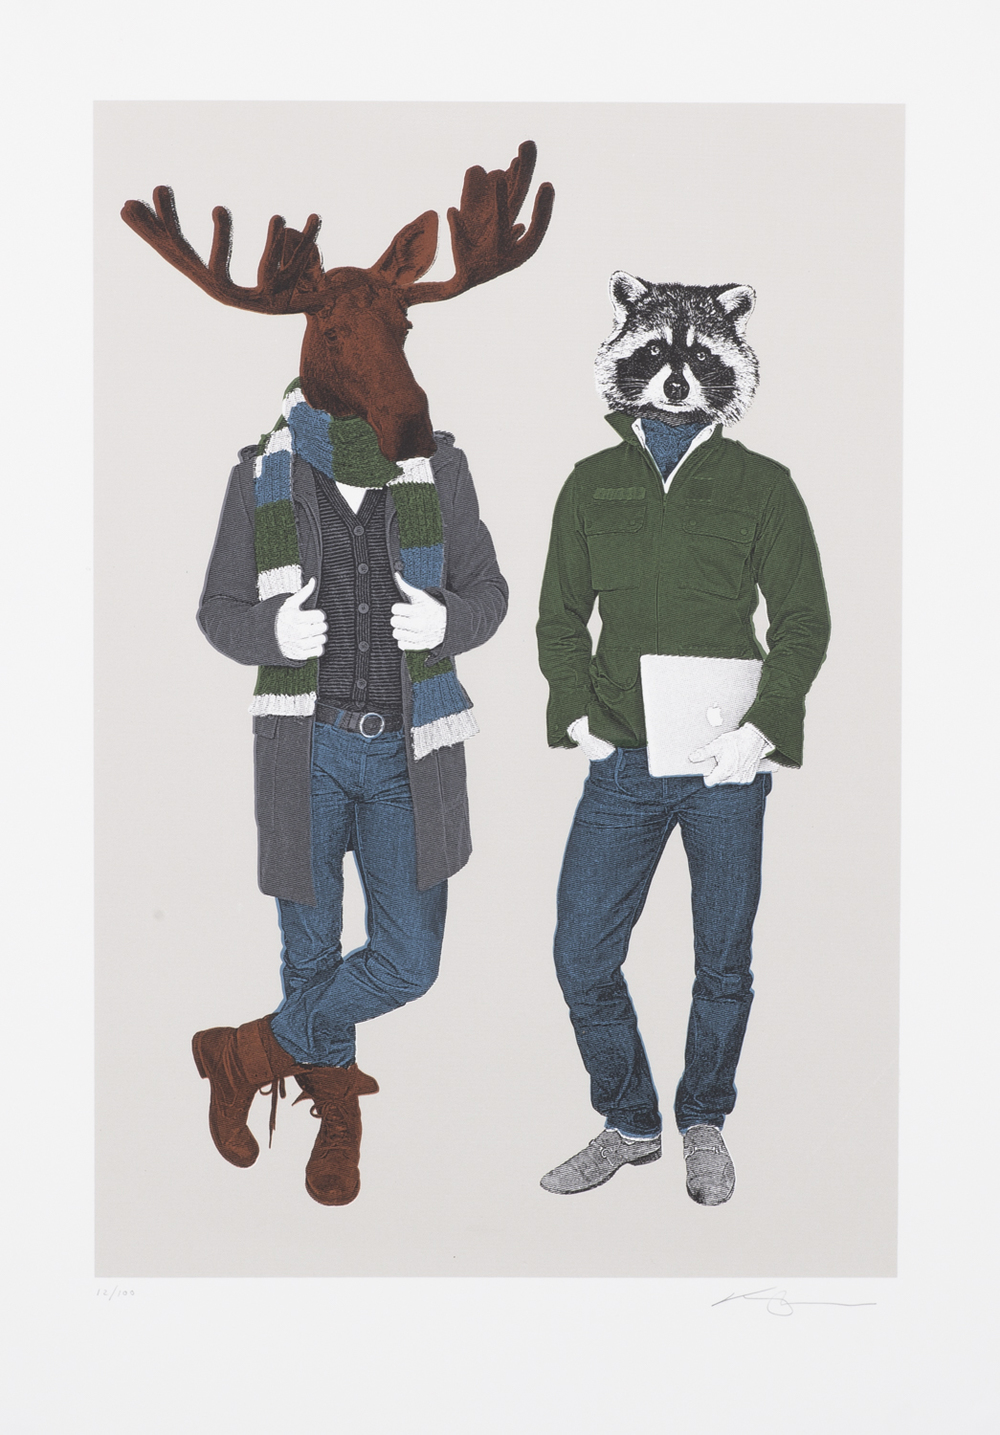 The Moose & Raccoon